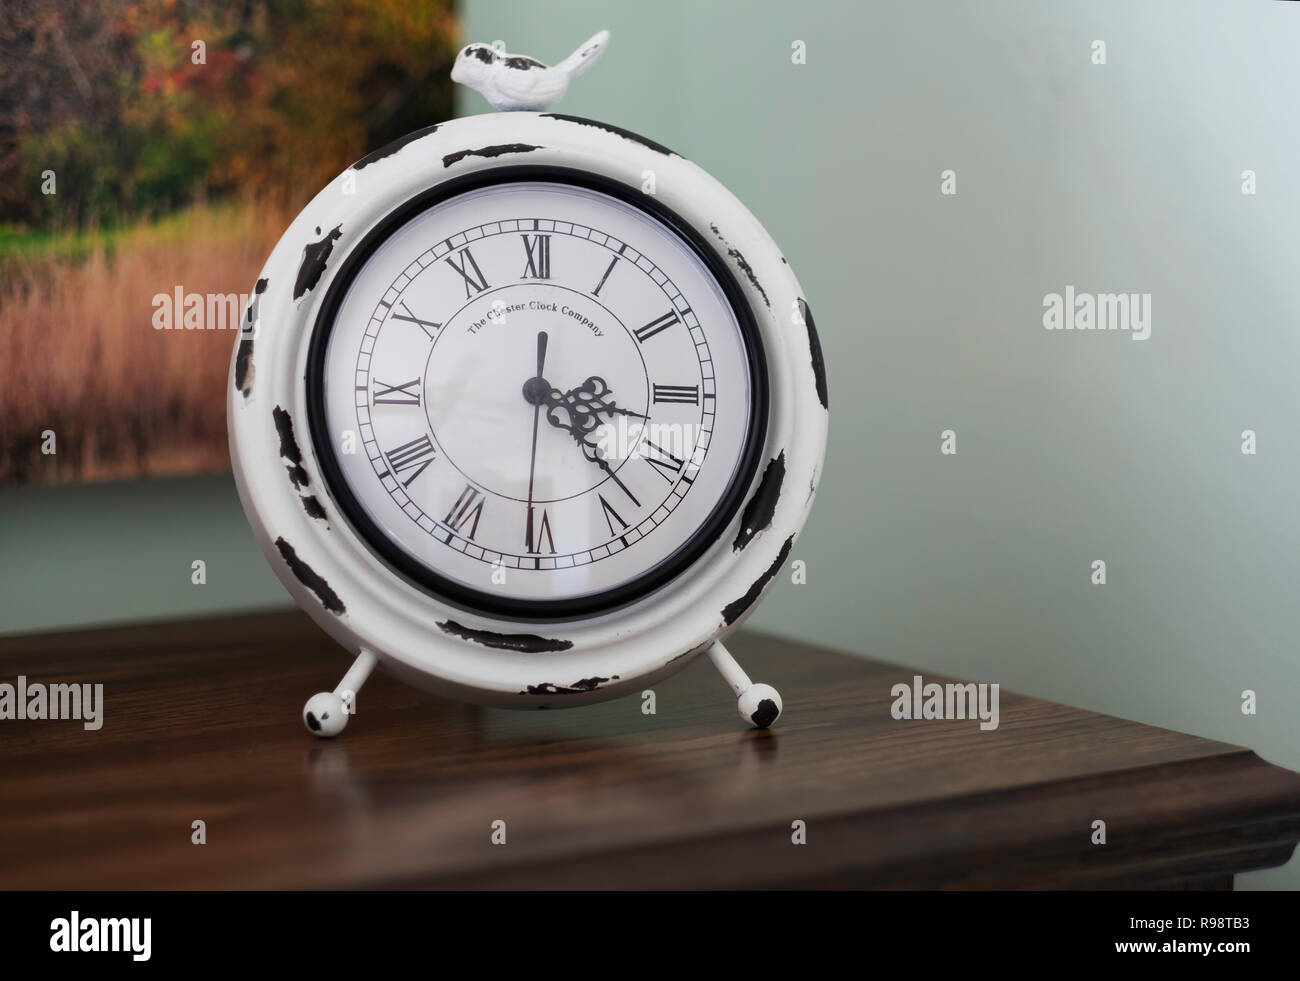 A new clock made to look old in the Modern Farmhouse style and decor. USA. - Stock Image